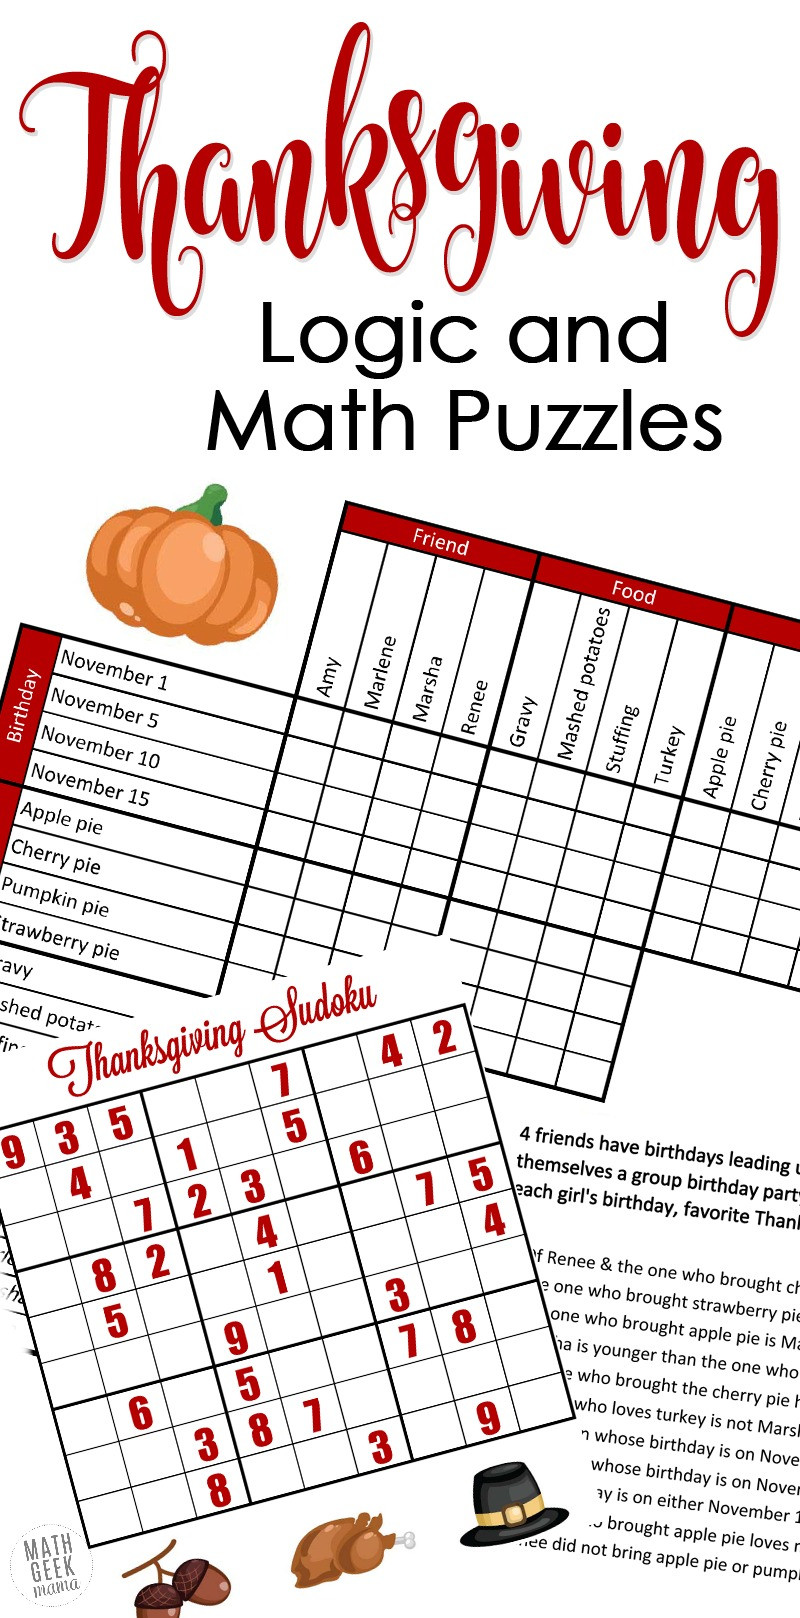 Middle School Math Puzzles Printable Free Fun Thanksgiving Math Puzzles for Older Kids